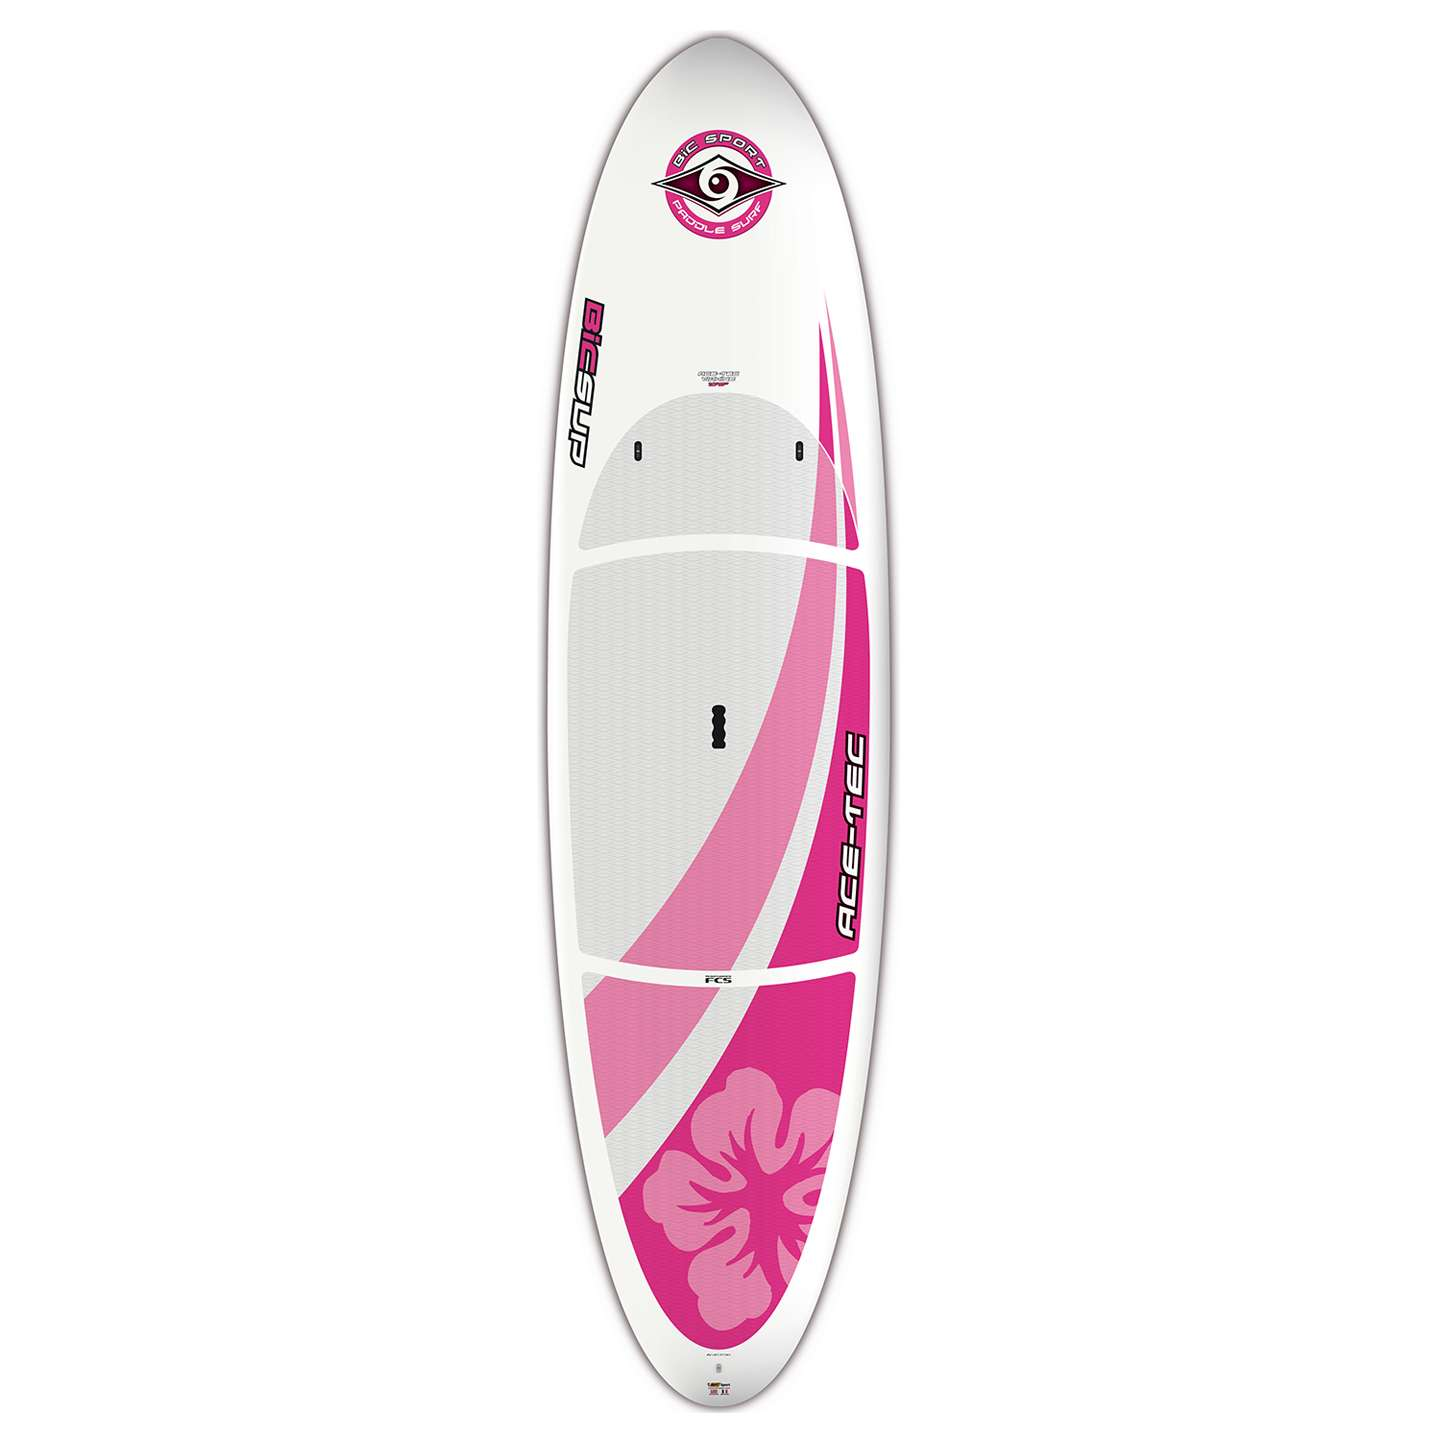 Bic 10 6 Ace Tec Performer Wahine Sup Board 2015 King Of